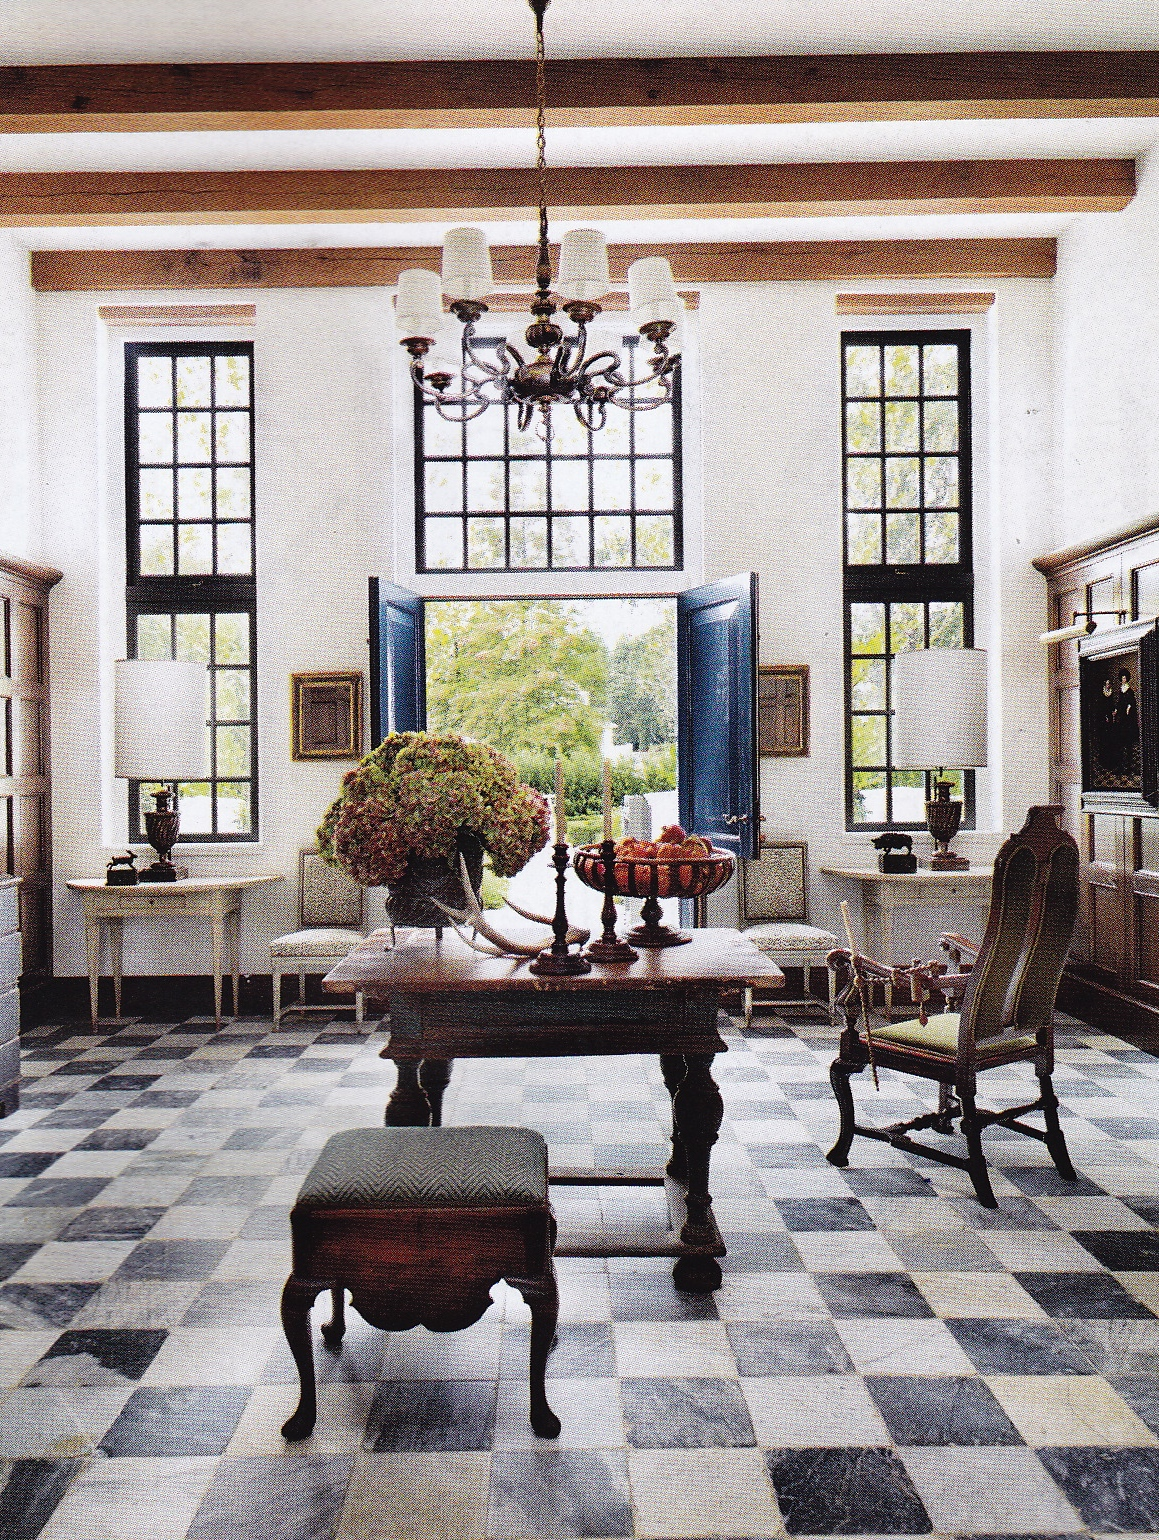 Fit For Dutch Masters Cristopher Worthland Interiors